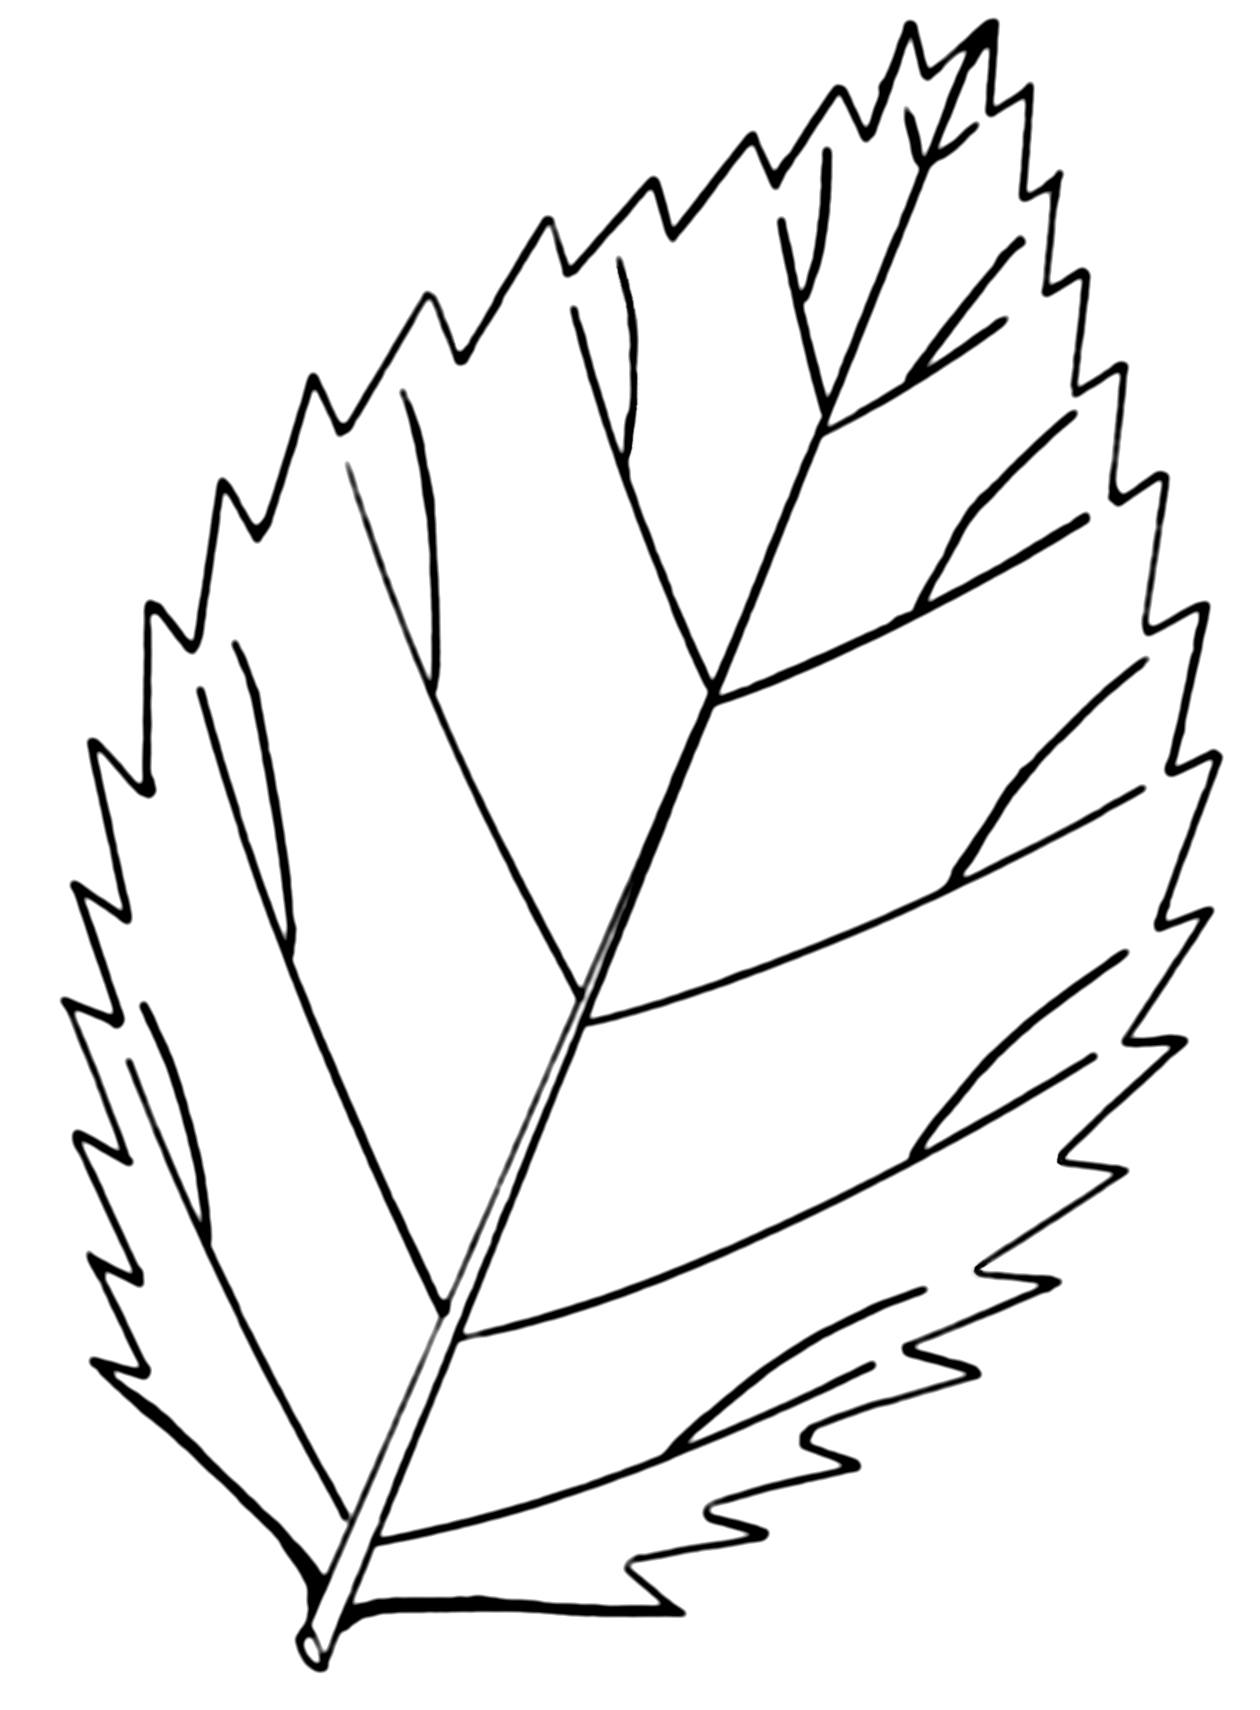 Line Drawing Leaves : Image gallery leaf line drawing